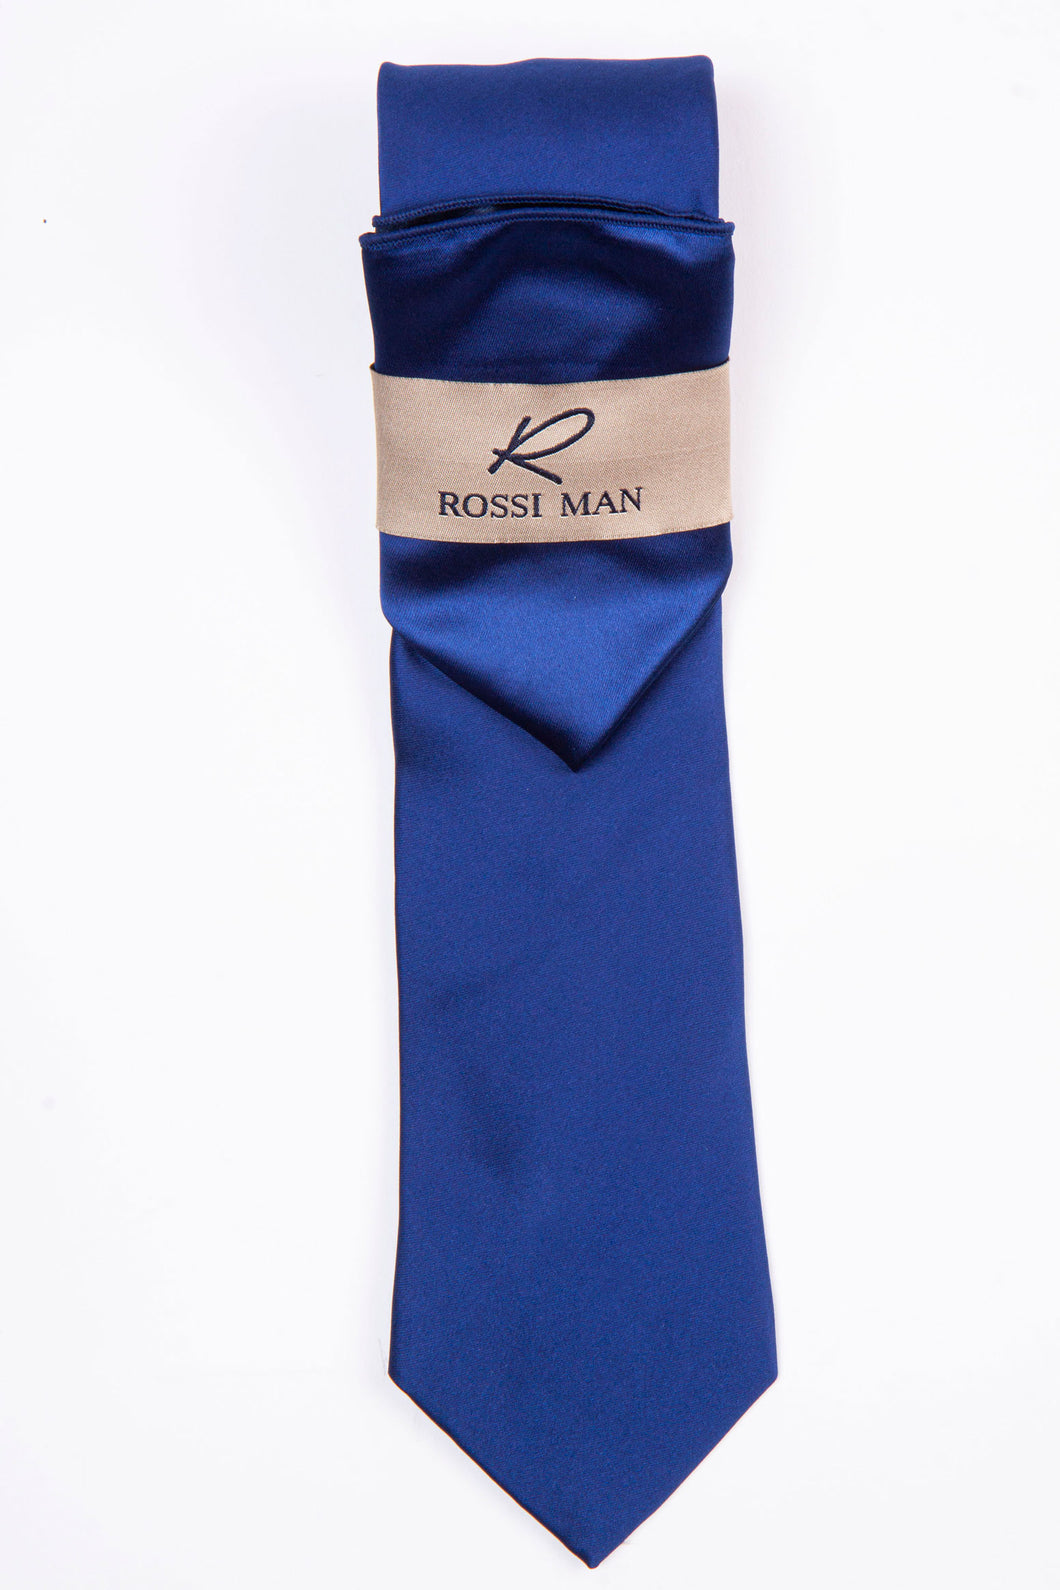 Rossi Man Tie and Pocket Round - RMR665-10